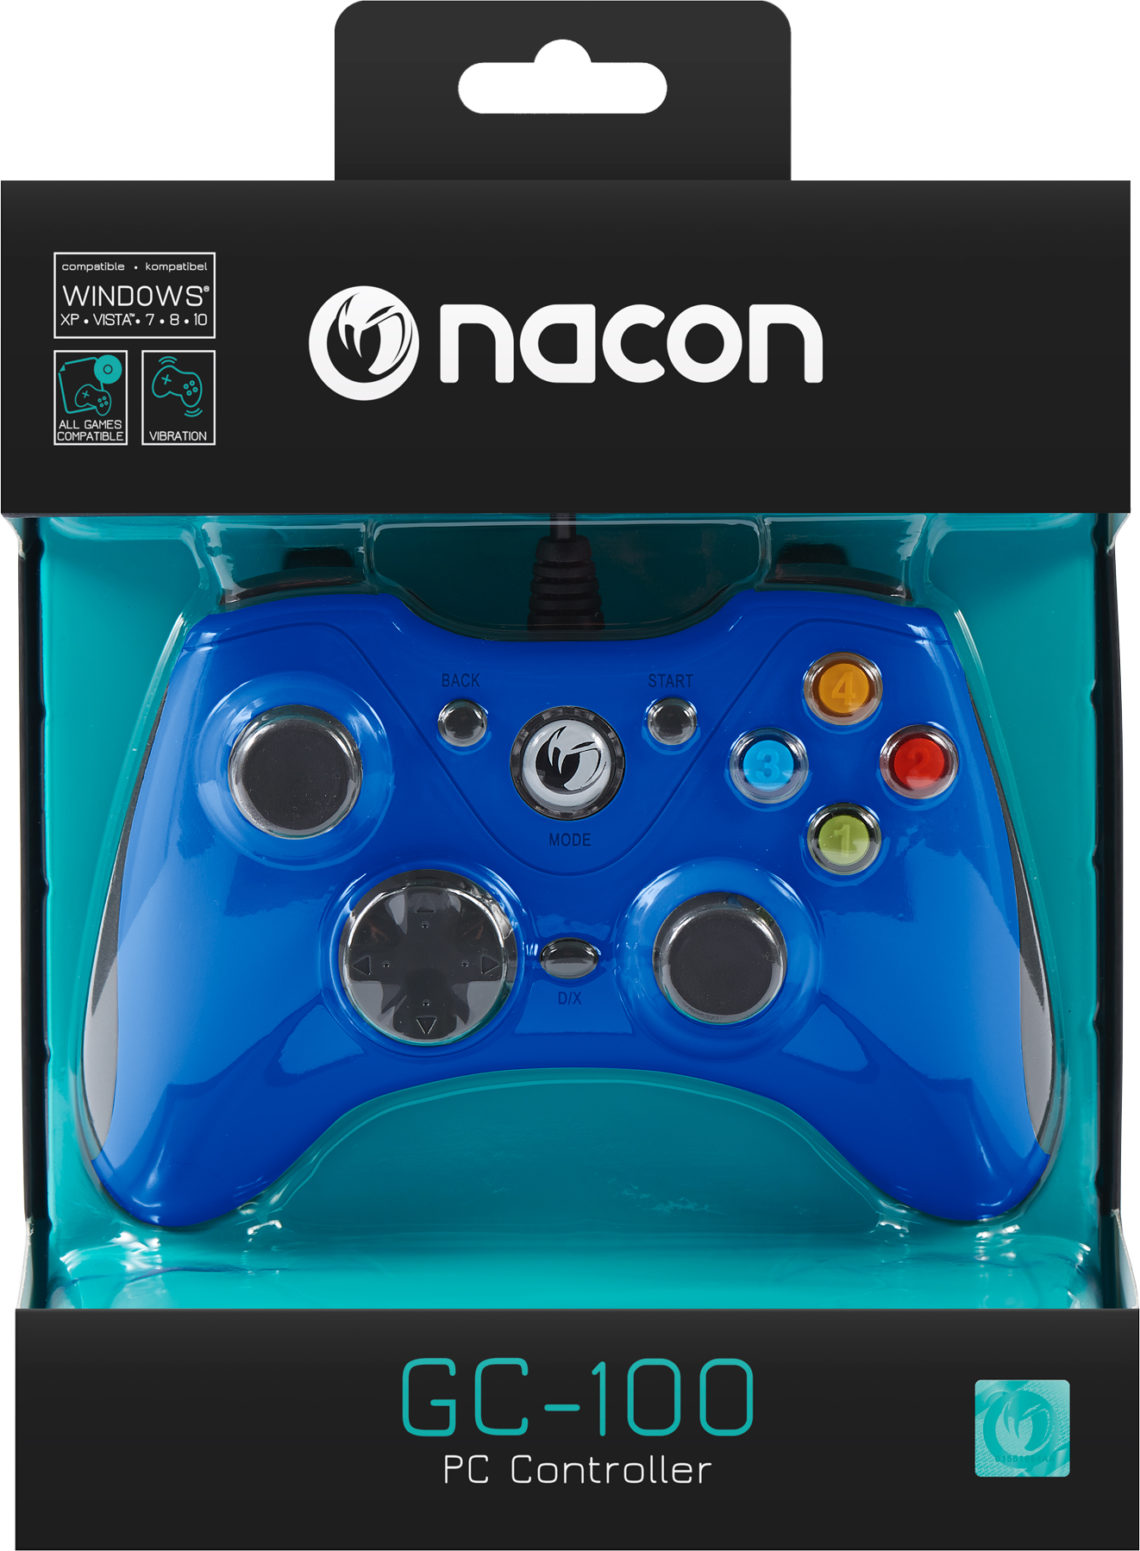 NACON PC Game Controller (Orange) PCGC-100BLUE - Image  #2tutu